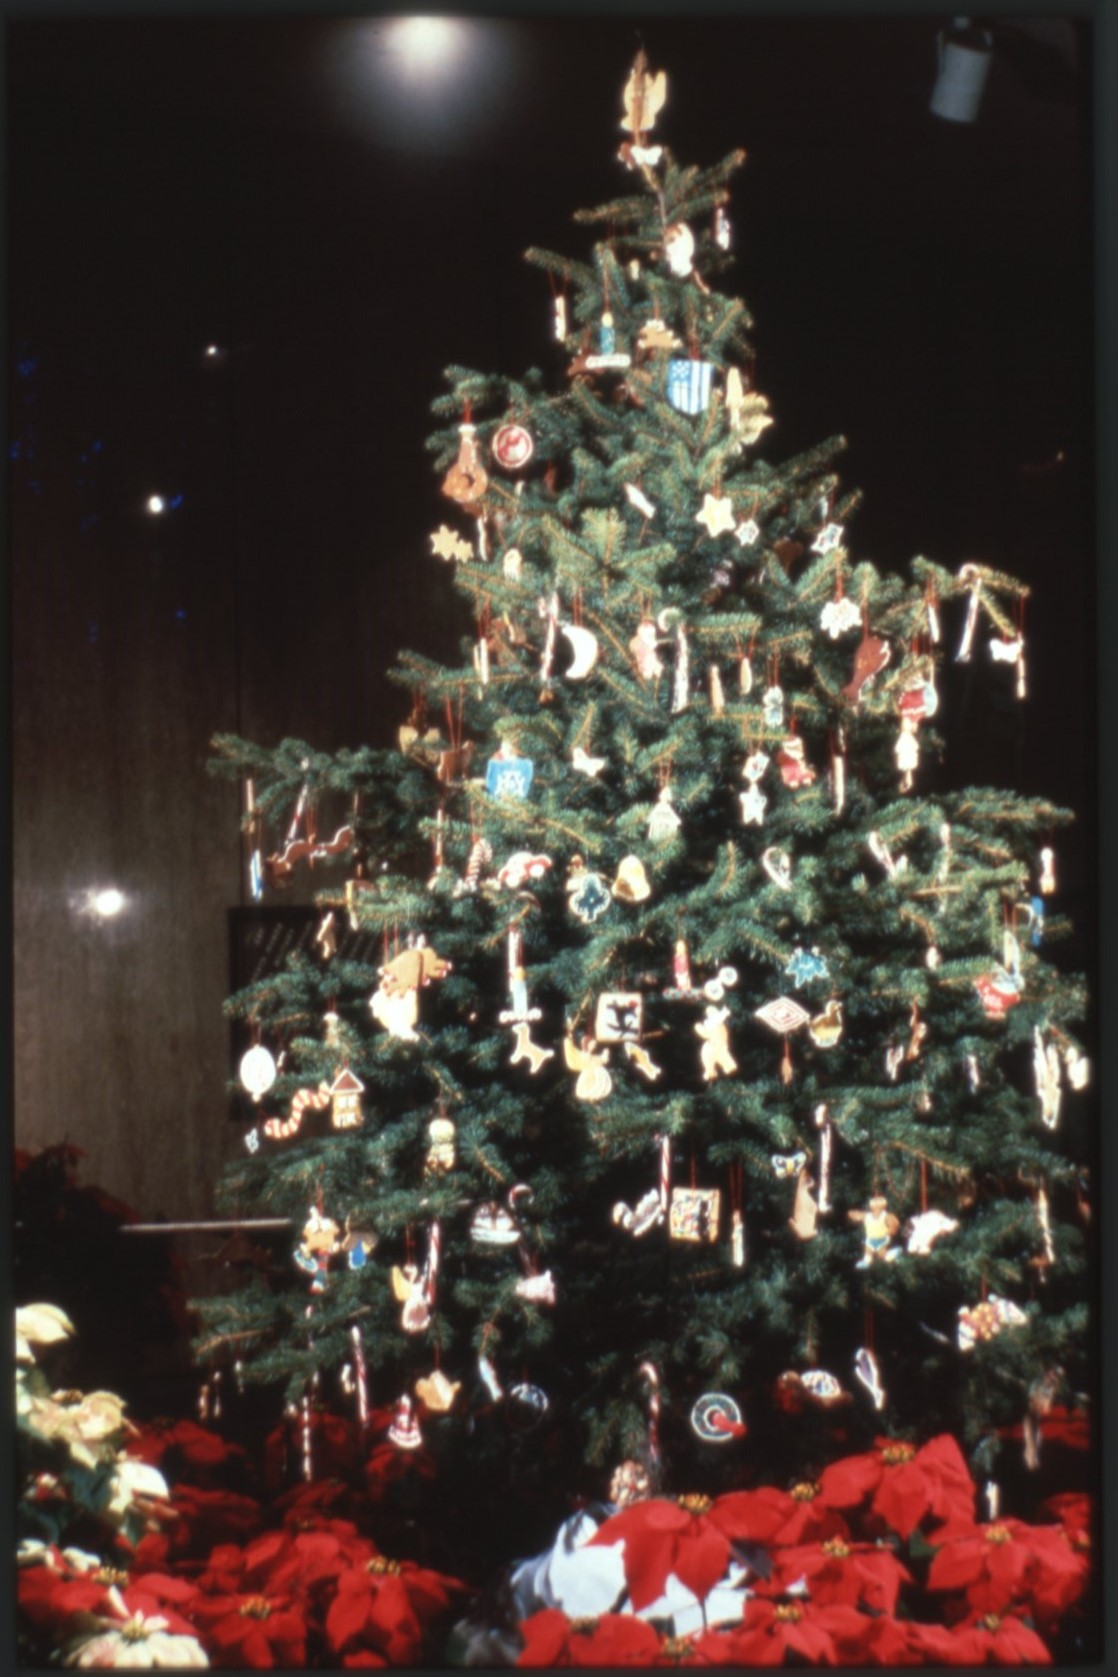 Cookie Tree, 1980. Smithsonian Institution Archives, Accession 11-009: Smithsonian Photographic Serv